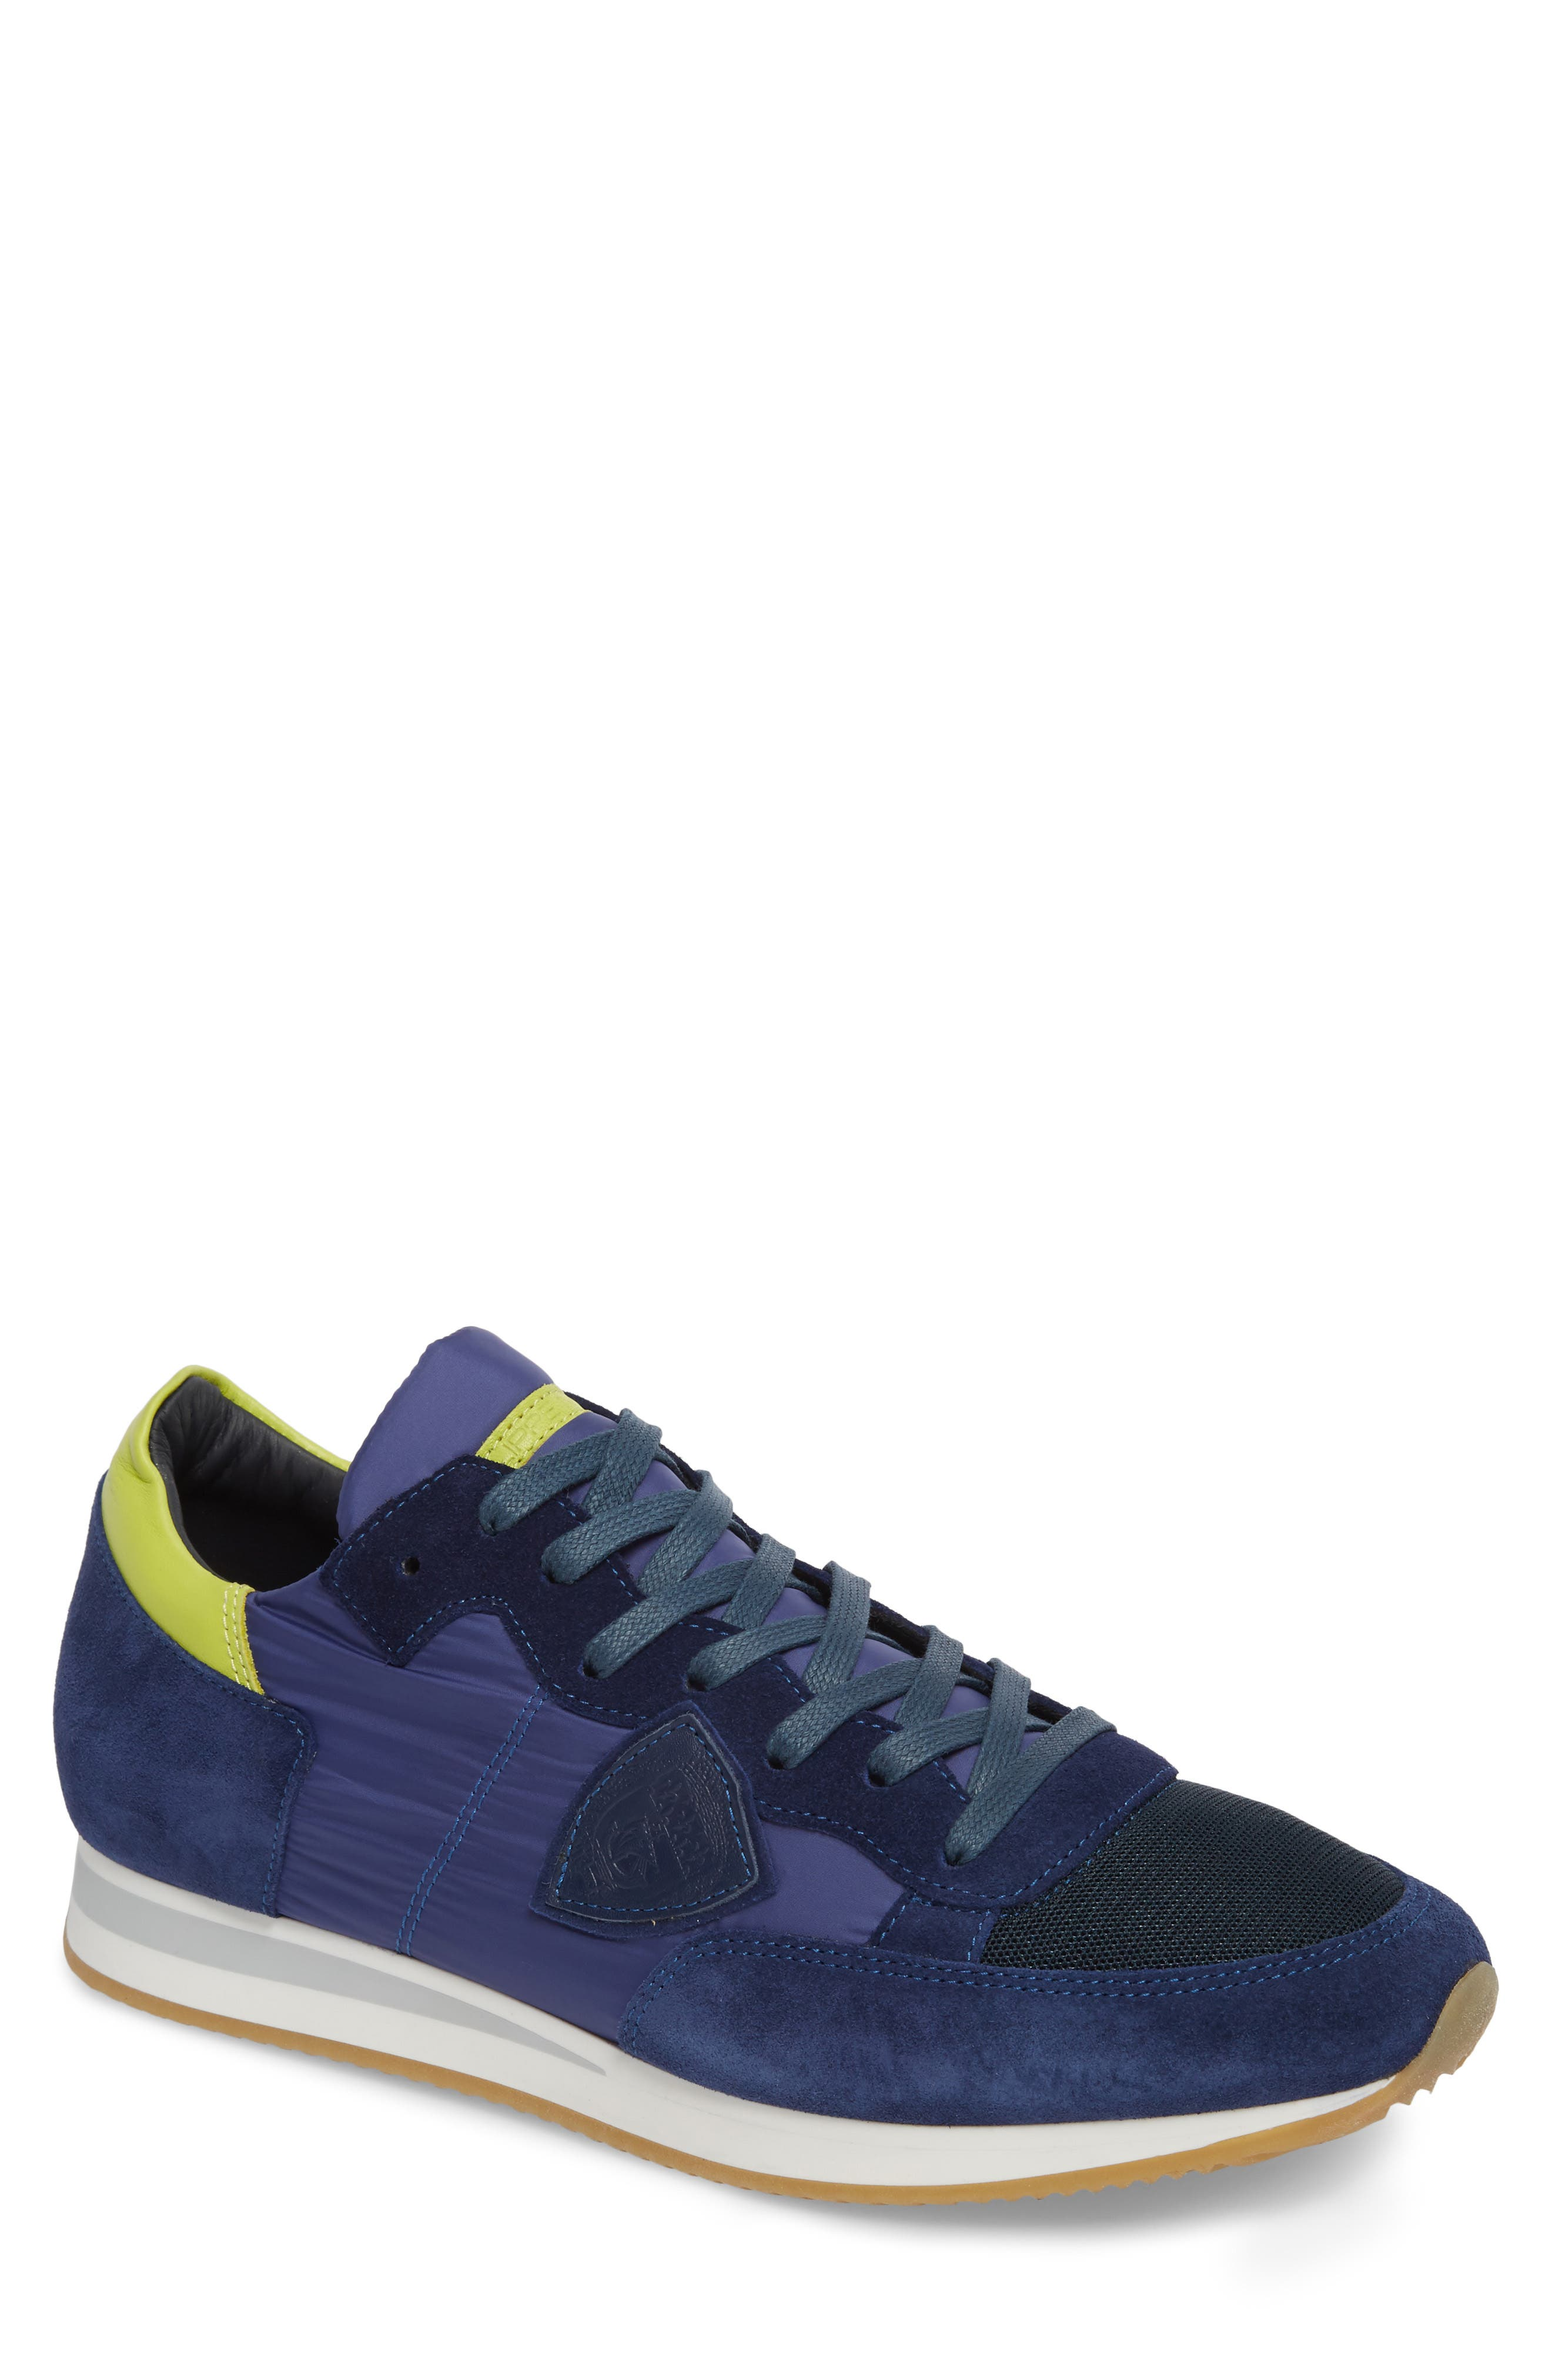 Tropez Low Top Sneaker,                         Main,                         color, 430